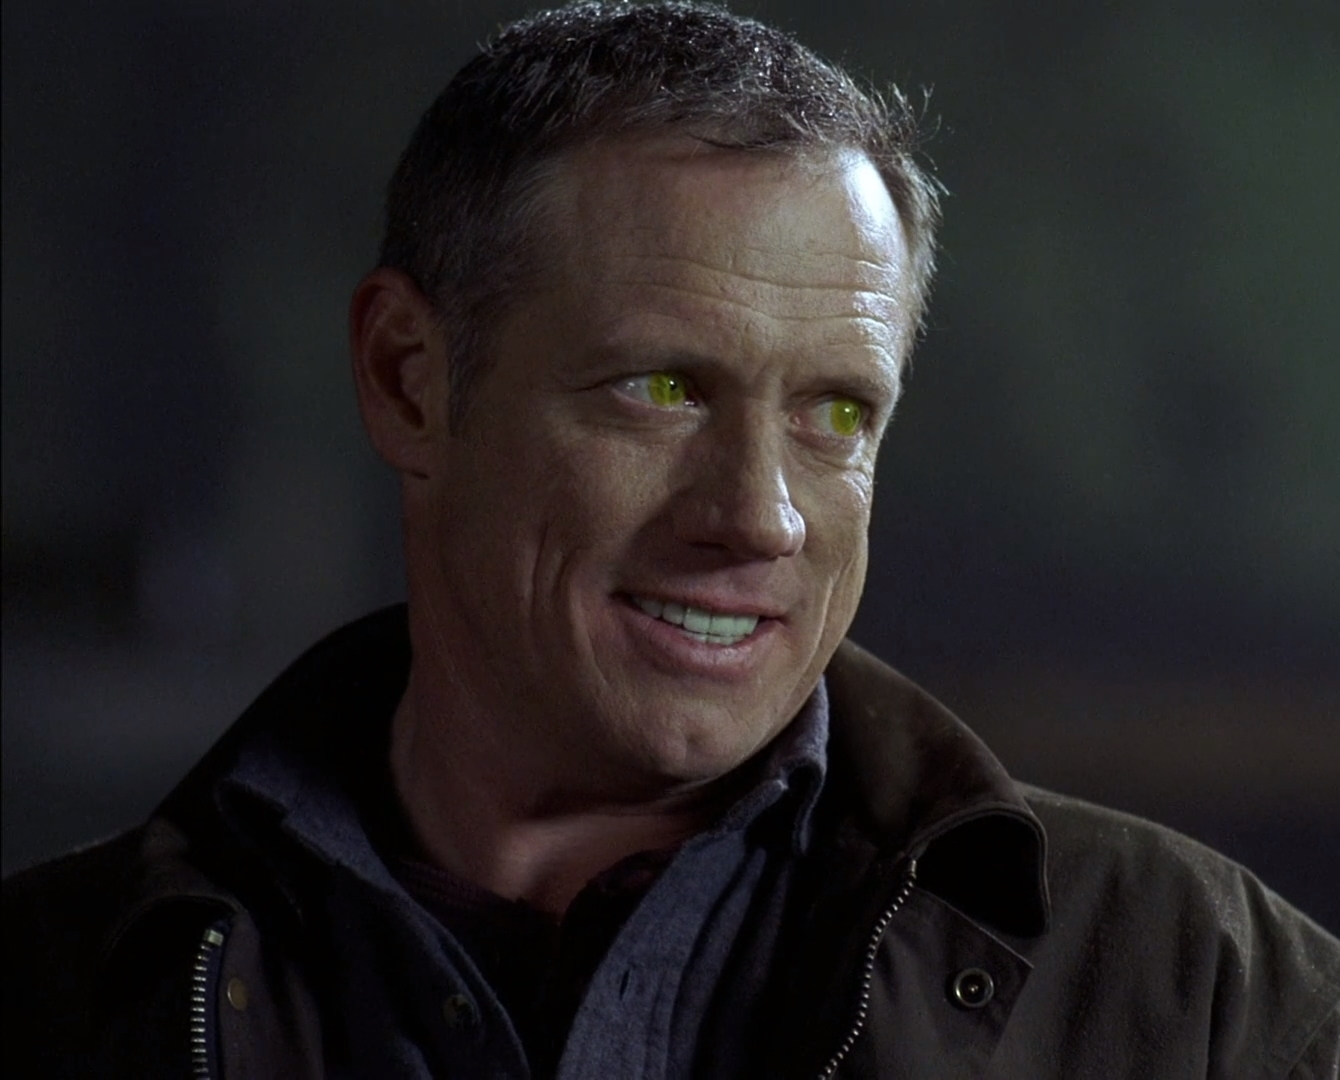 Azazel (Supernatural)